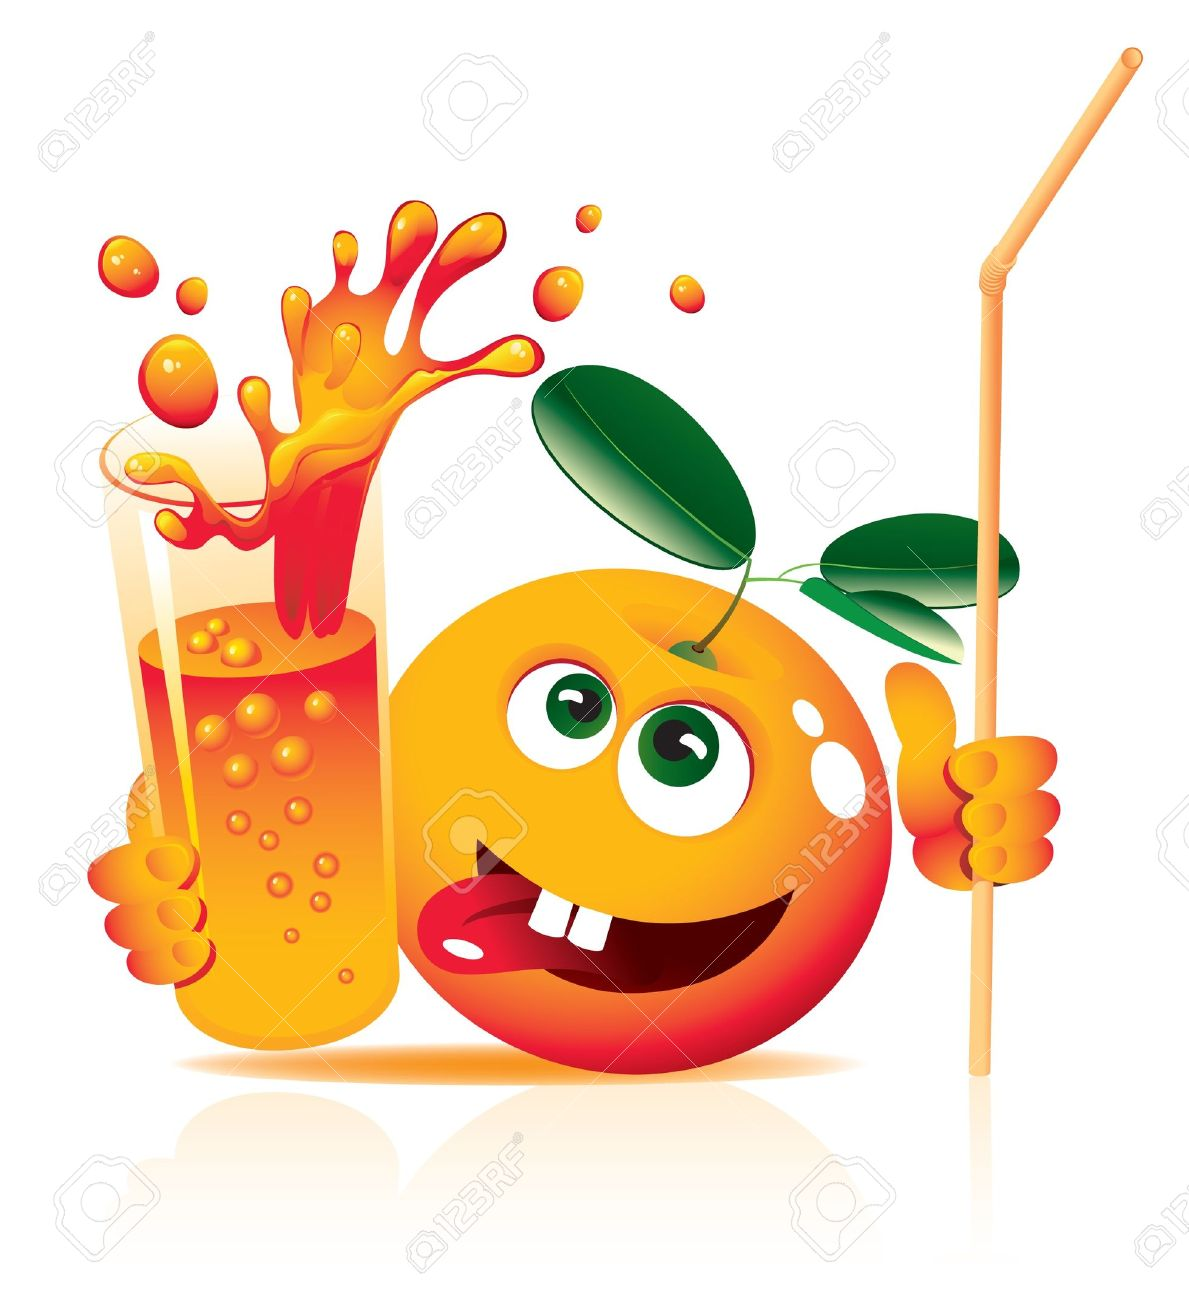 Orange Juice Glass Clipart Juice Glass Lively Orange